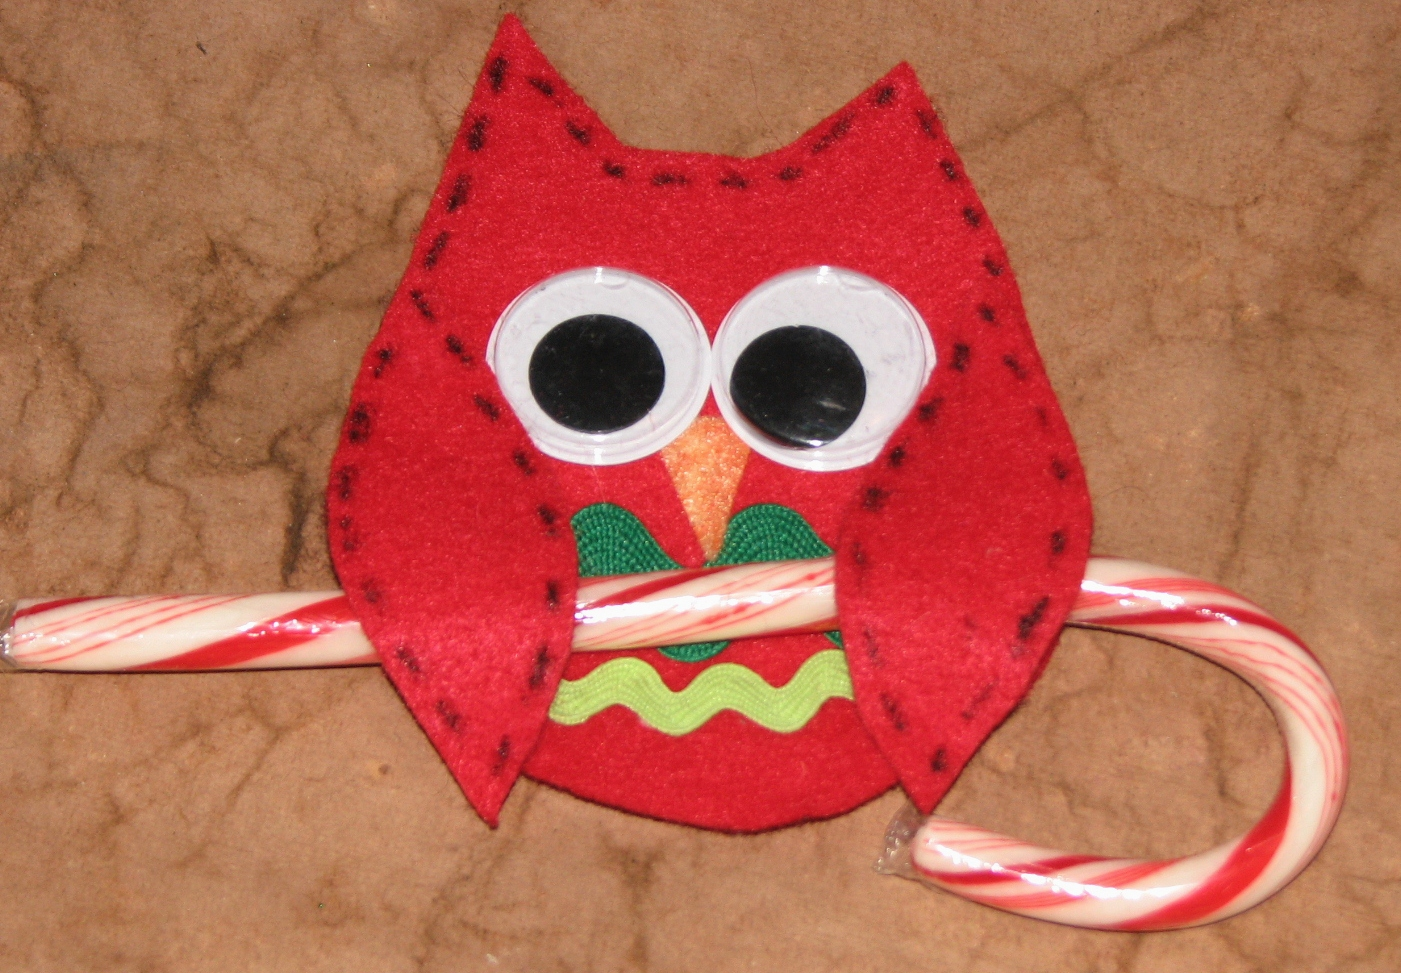 Christmas Craft Ideas With Candy Canes Part - 41: Candy Cane Owl Holder Variation